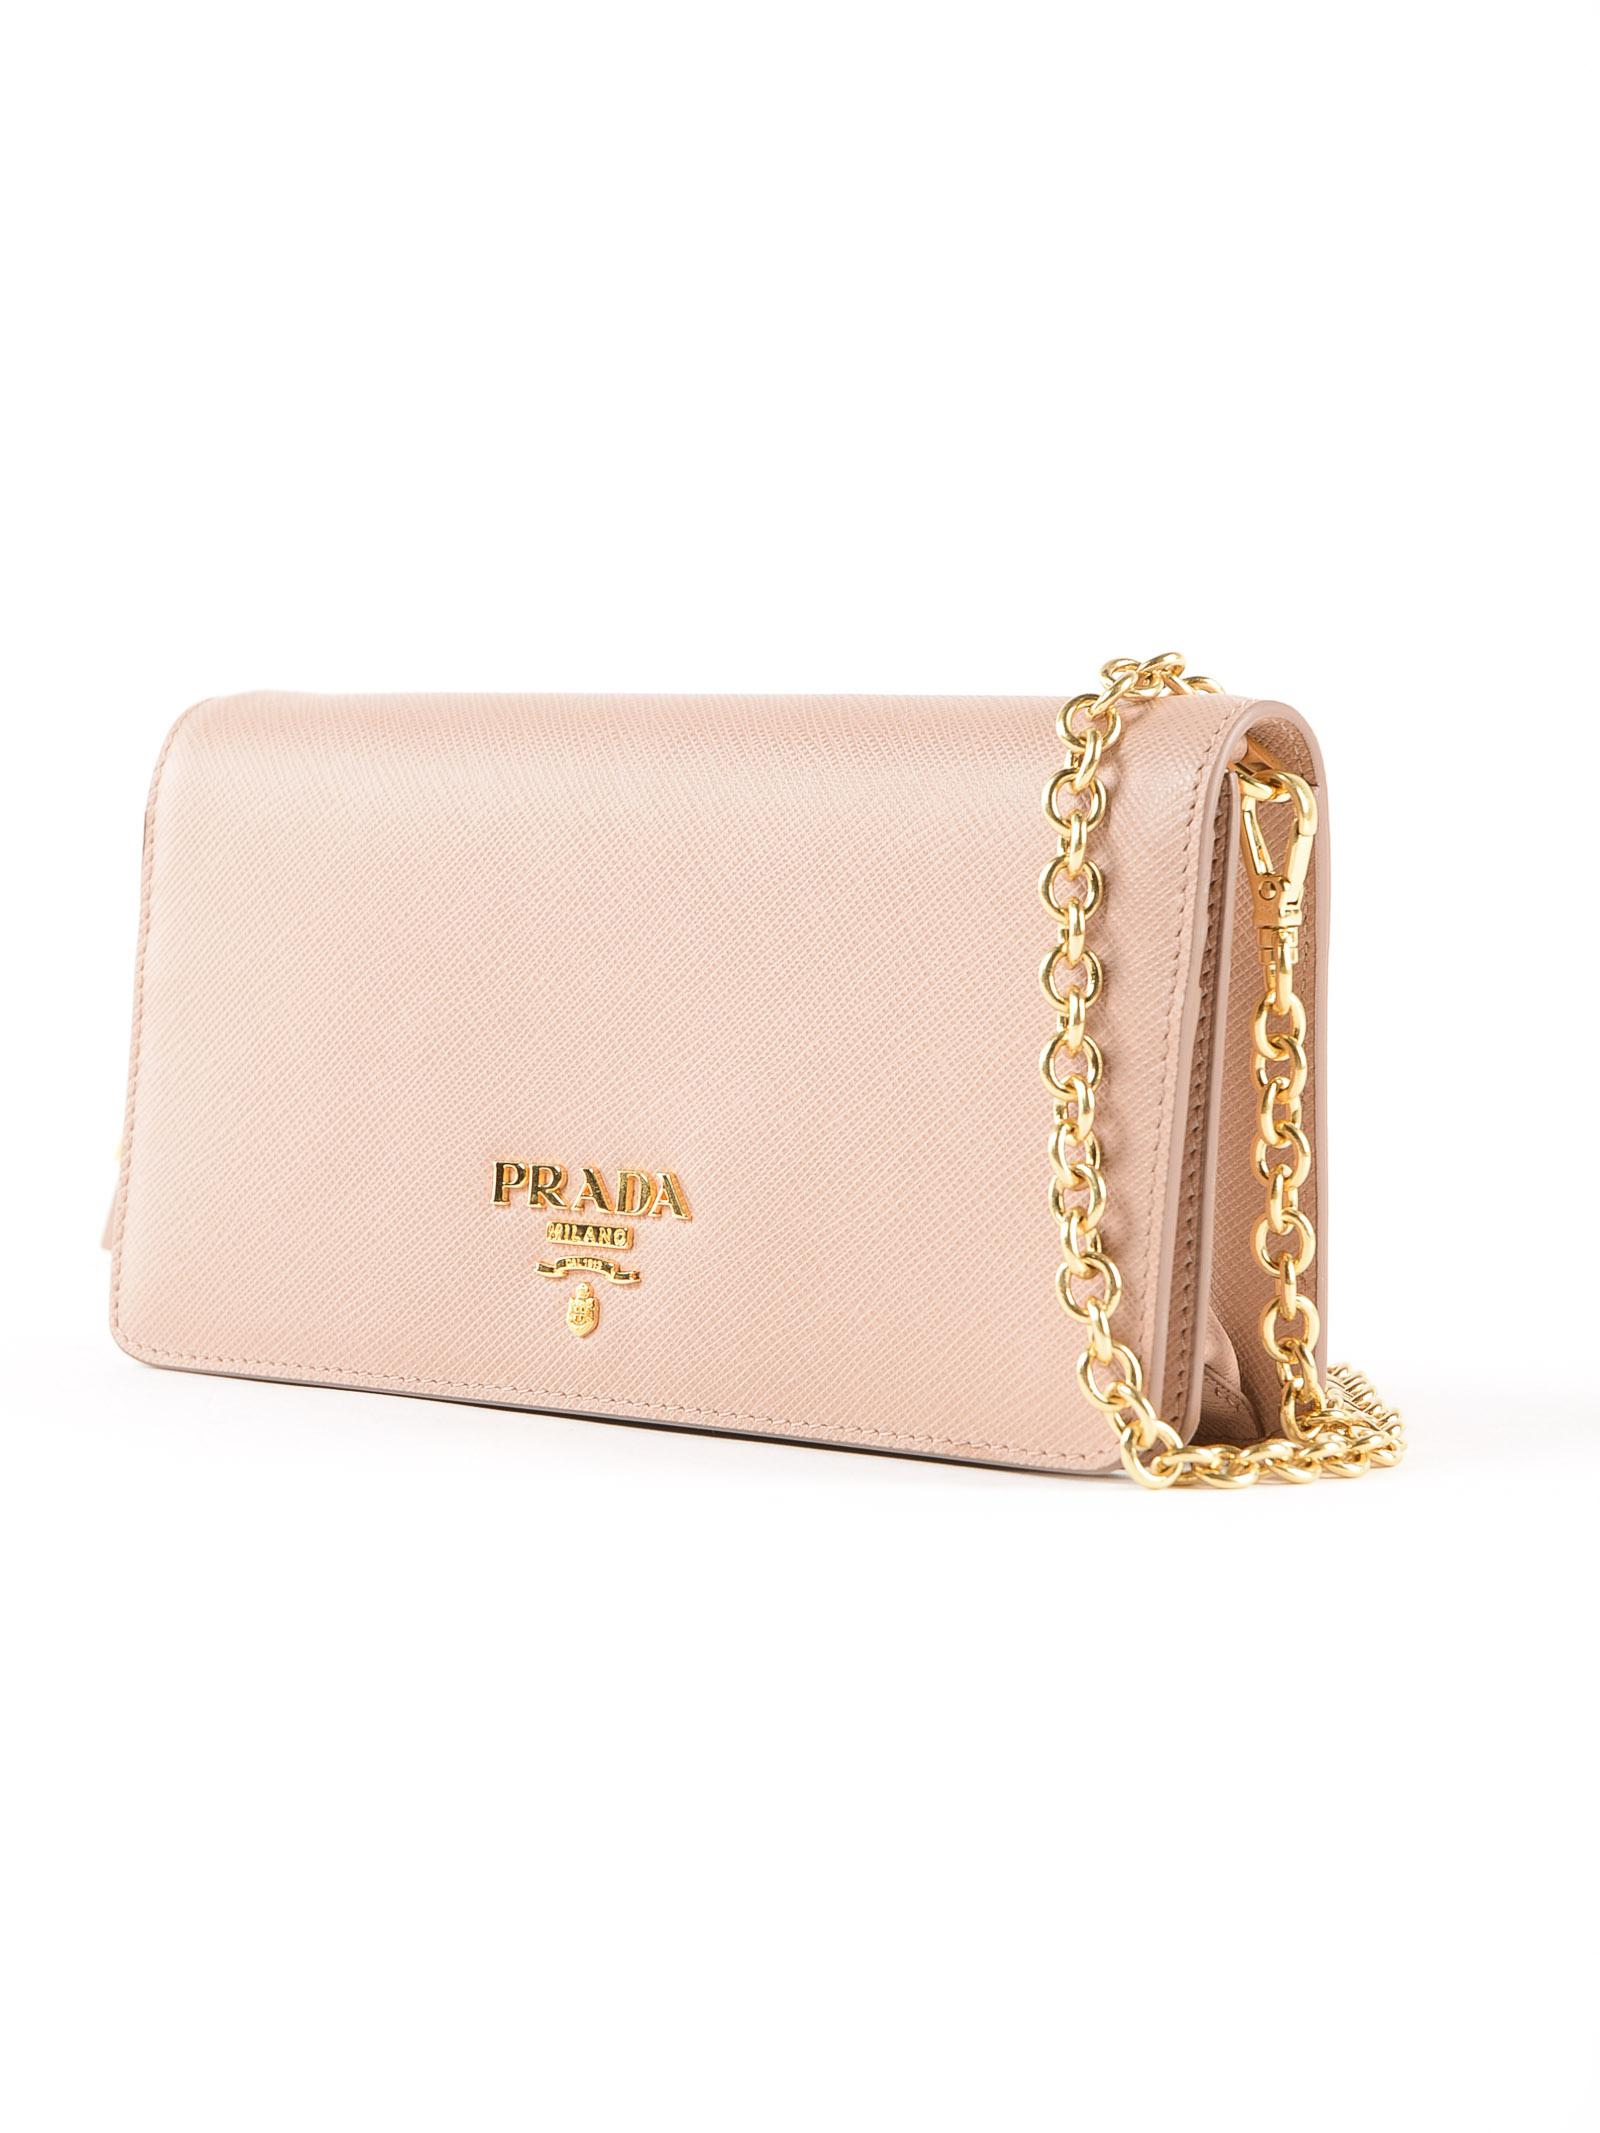 0270c9504c38 Prada Mini Bag Saffiano - Lyst